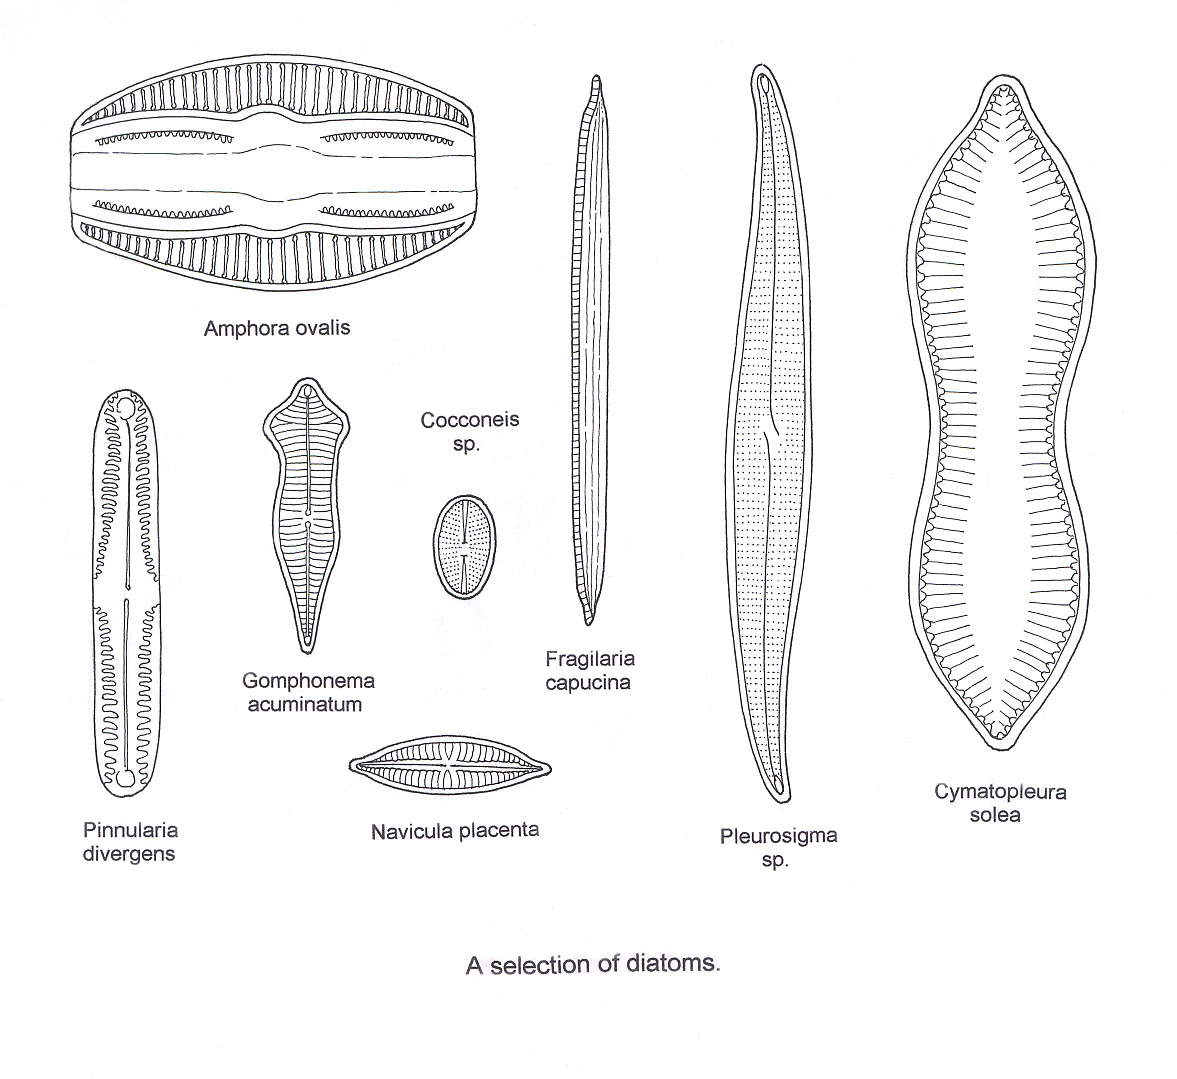 diatom diagram - photo #6